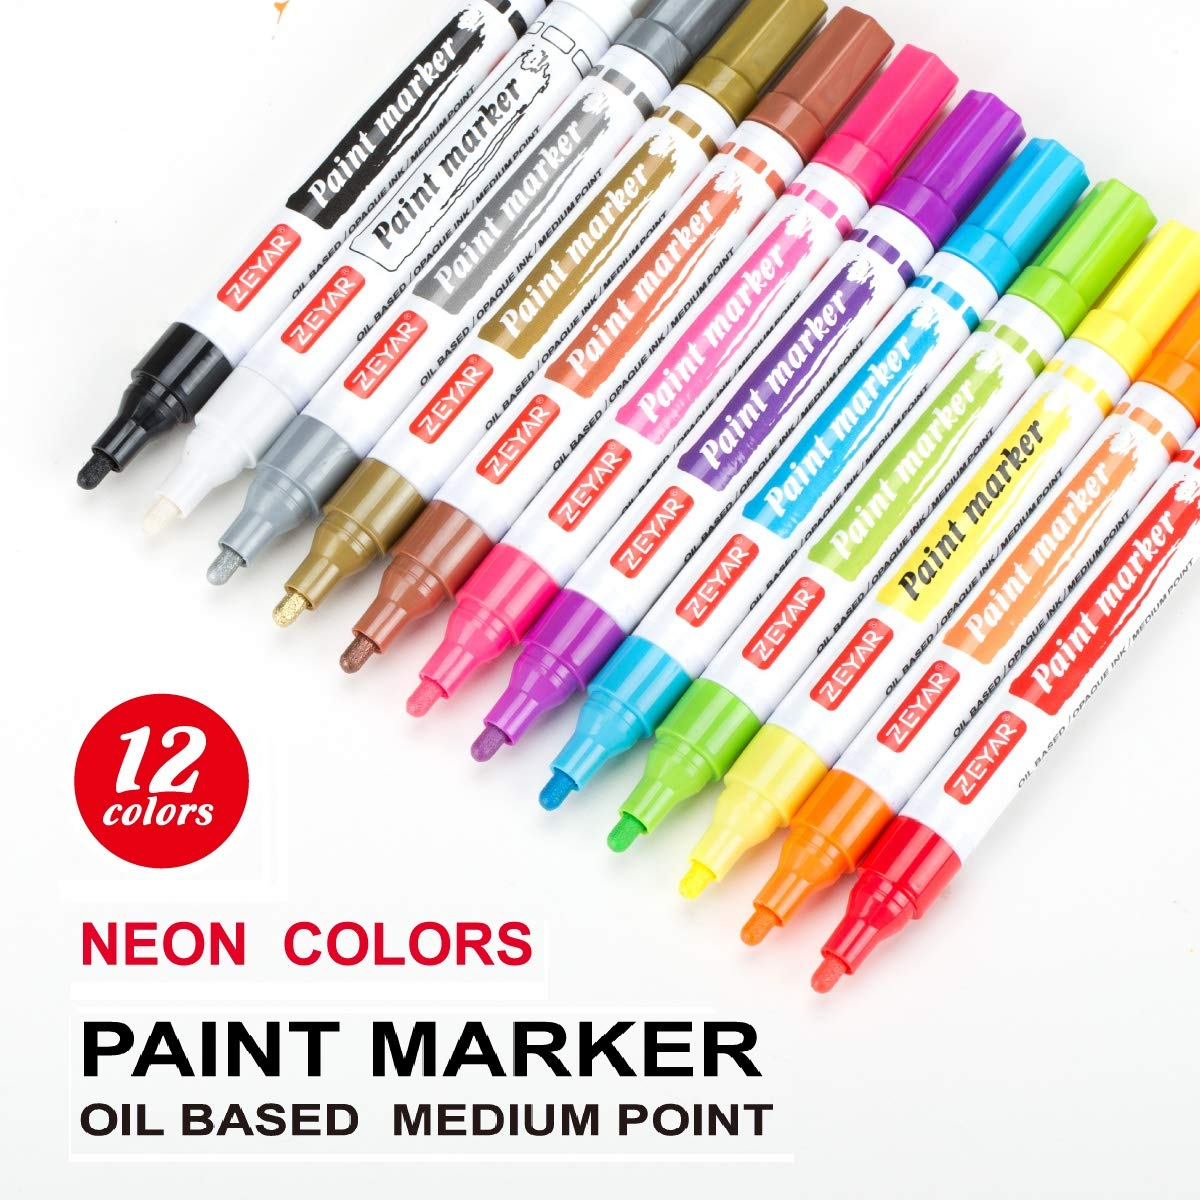 ZEYAR Paint Pen Markers Oil-Based Medium Point Greeting Cards and Rock Painting Professional Marker Manufacturer Great for Christmas Gift Cards 12 Beautiful Unique Neon and Metallic Colors